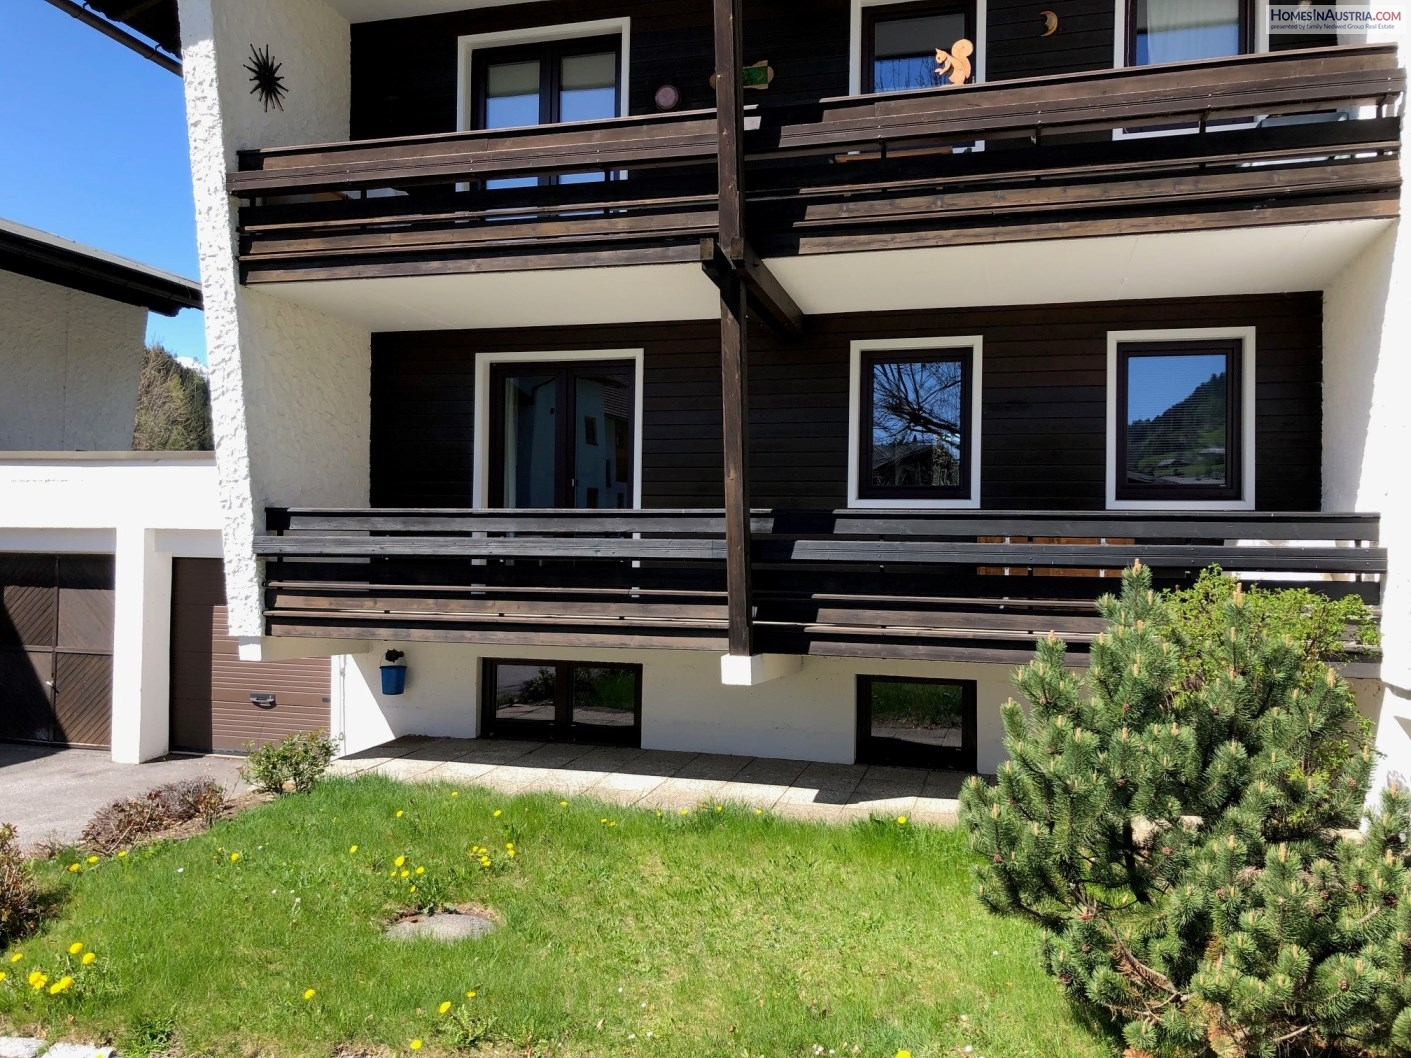 Bad Kleinkirchheim, Carinthia, Apartment (QUELLENWEG) 50m2, 2 Balconies, Garage, modern furnished